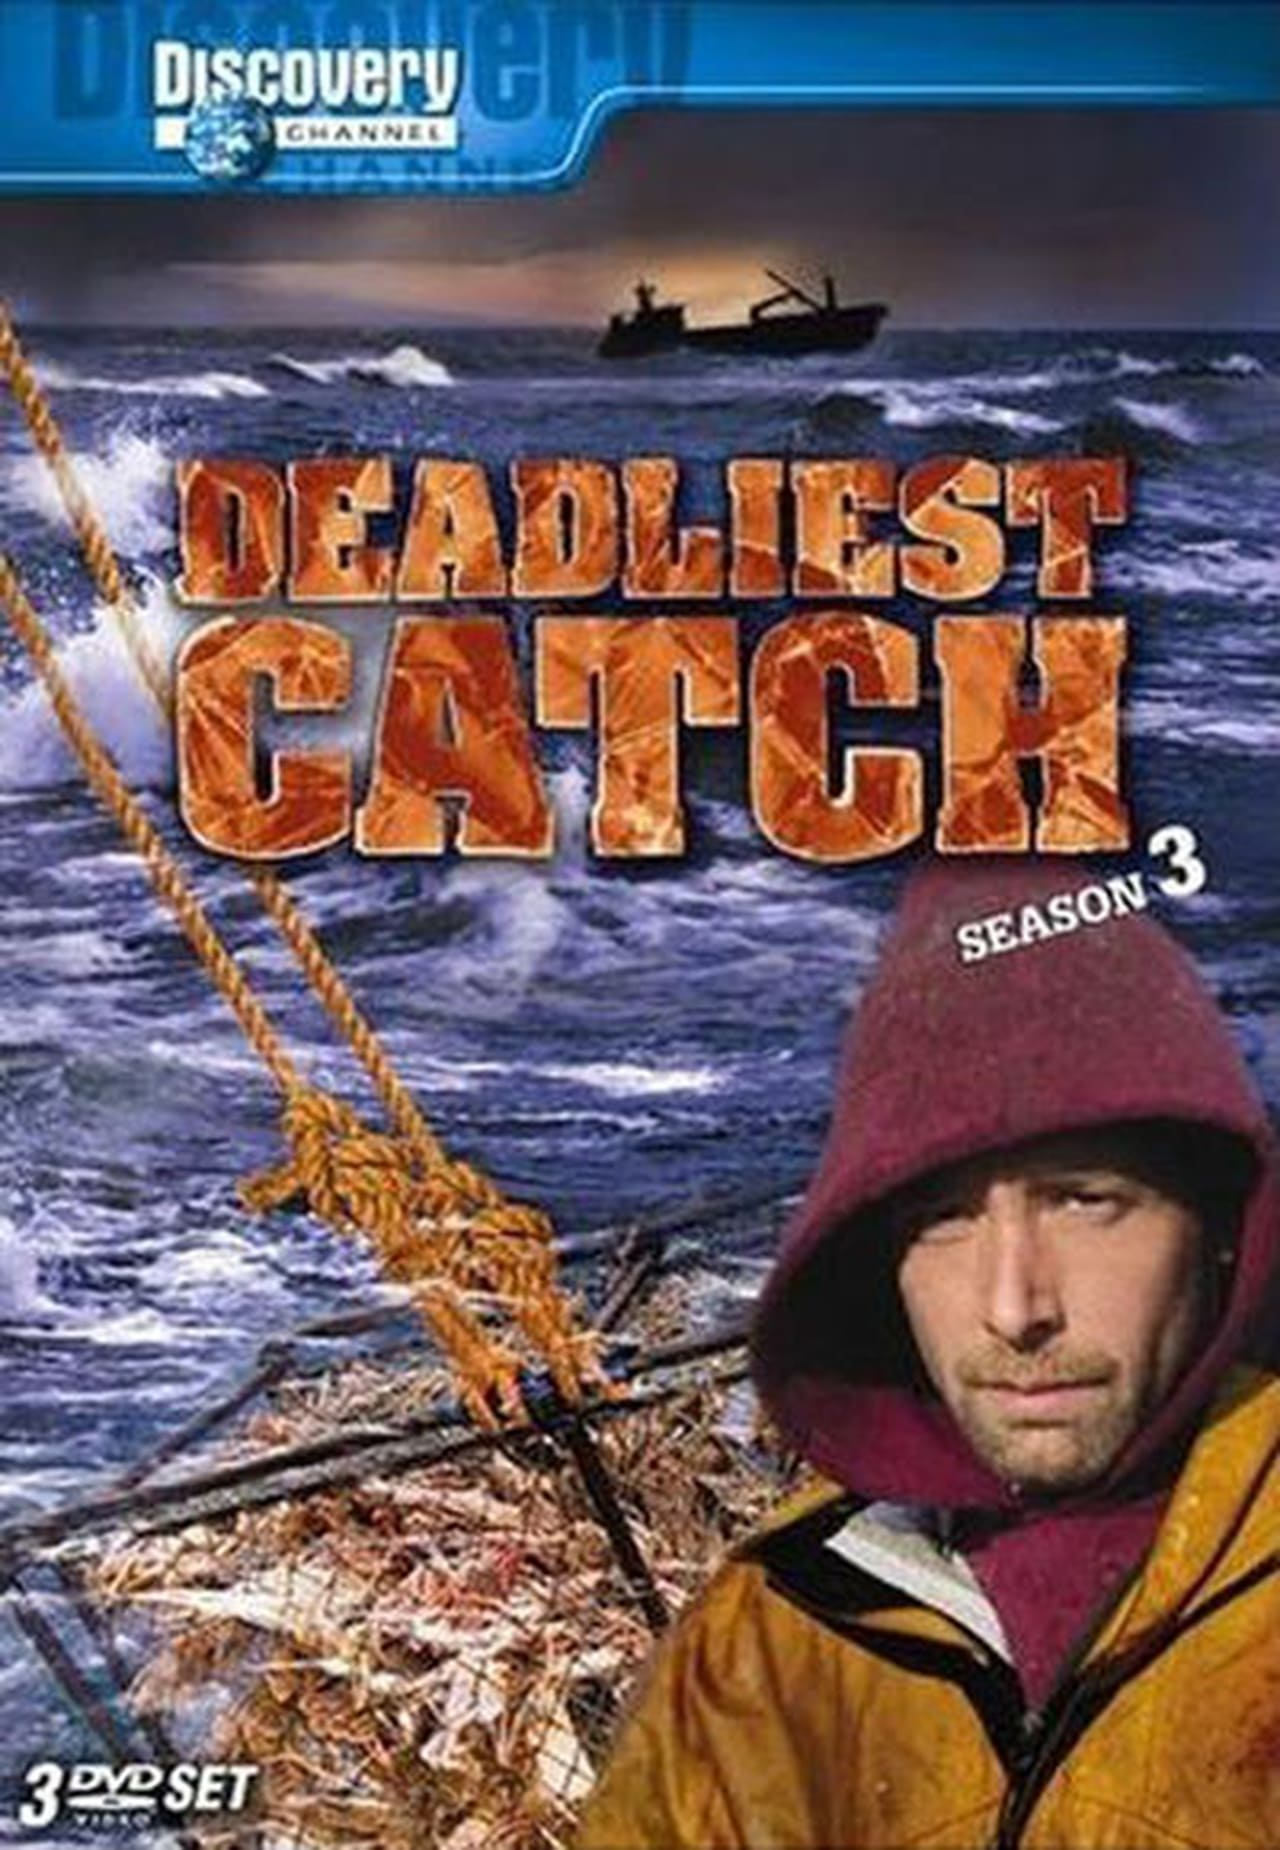 Putlocker Deadliest Catch Season 3 (2007)